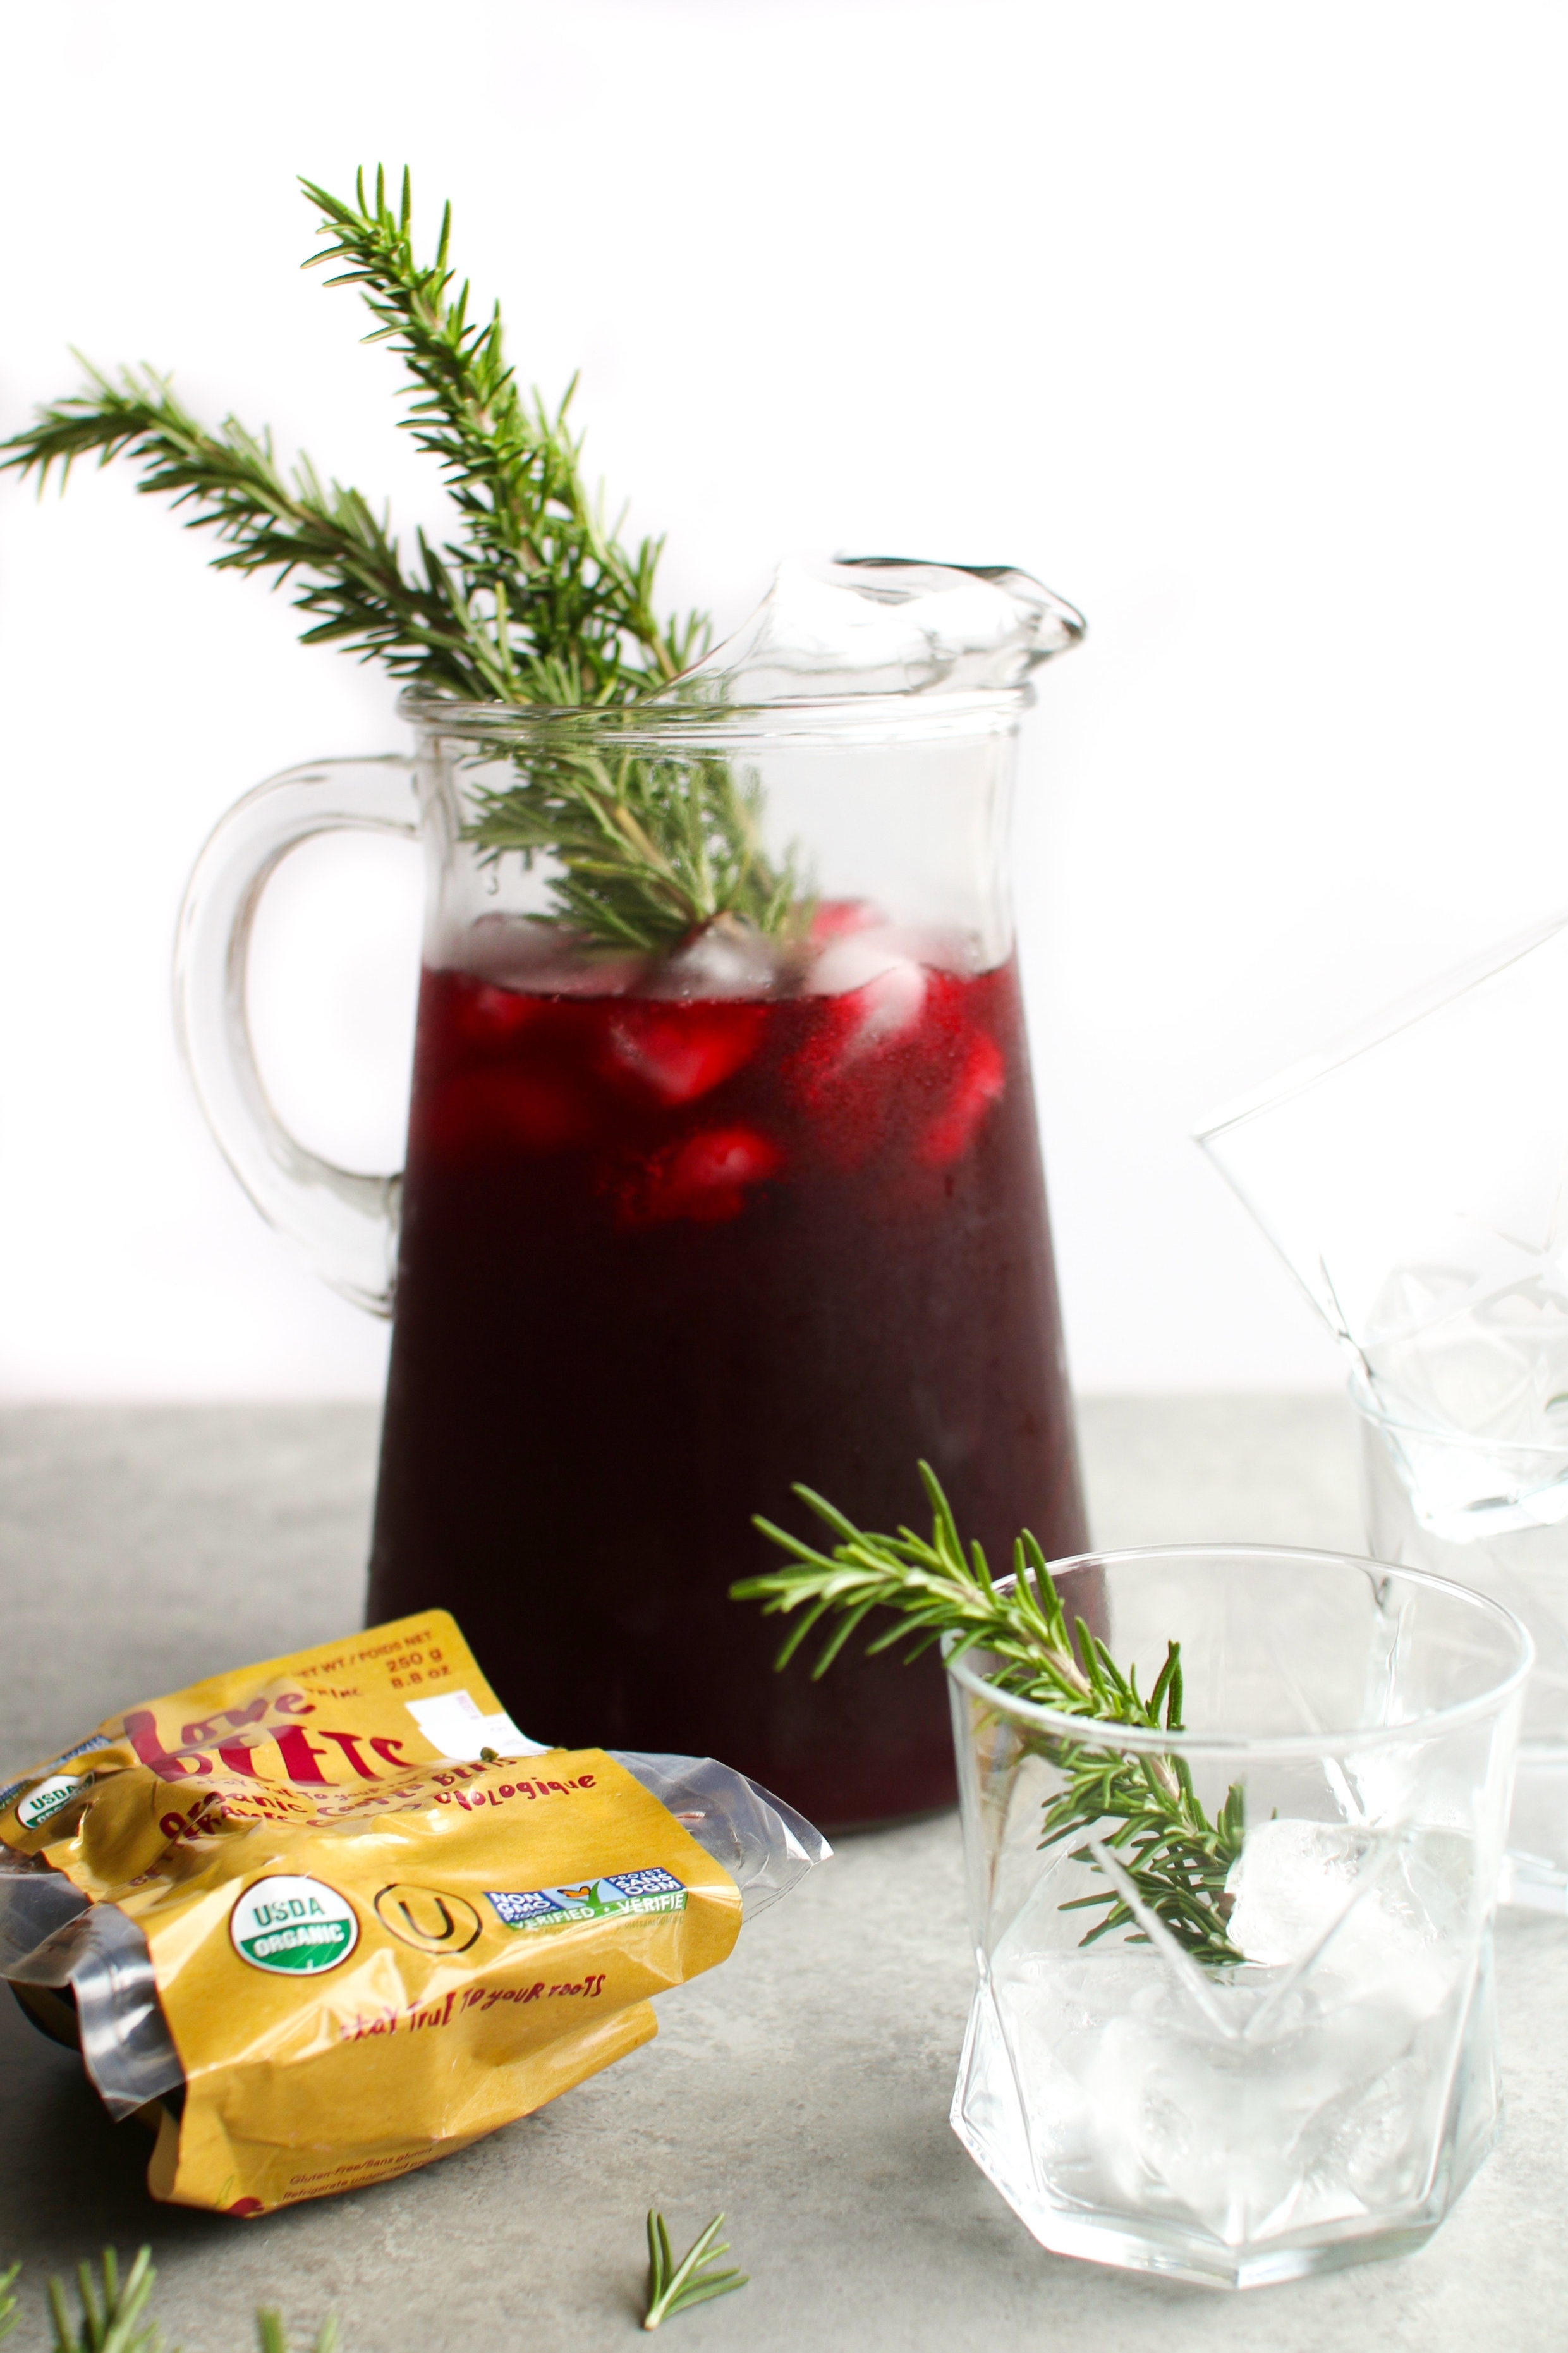 Bold Beet Lemonade perfect for Fall parties made with ready-to-eat Organic Love Beets.jpg